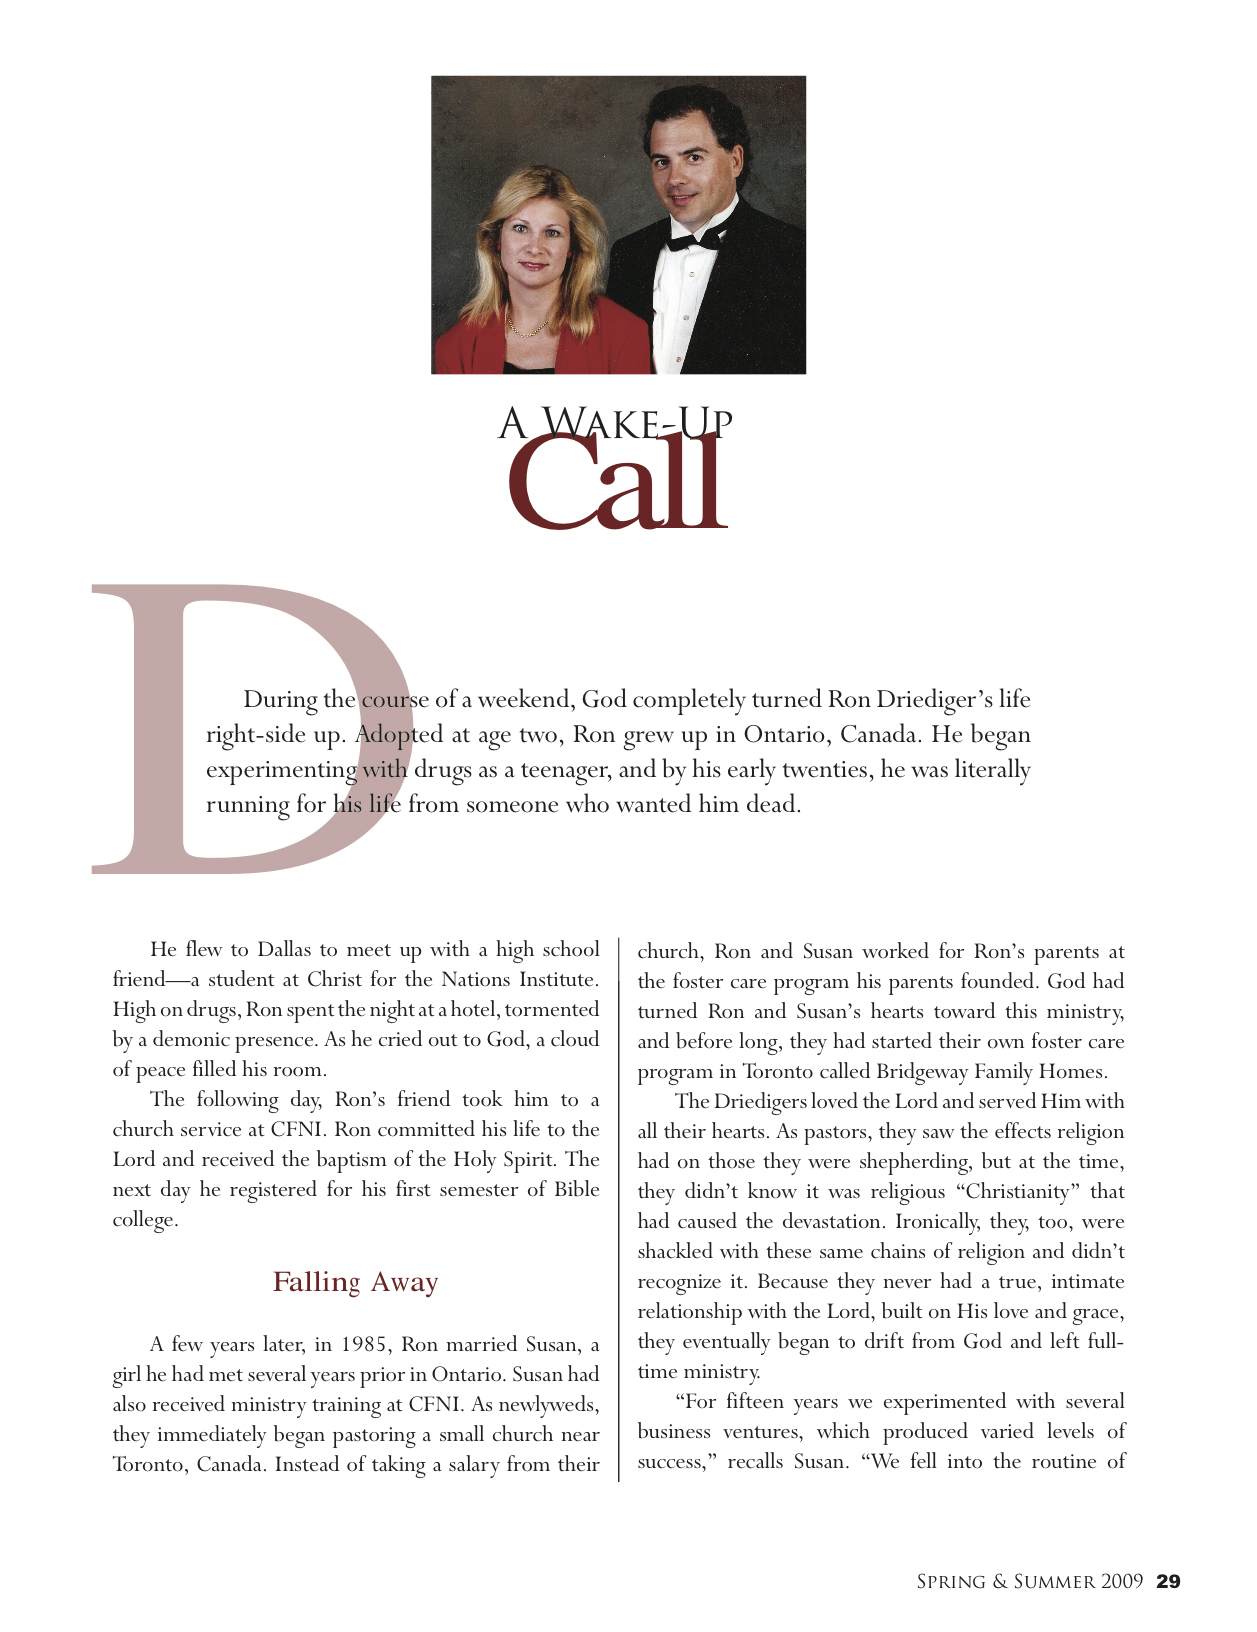 A Wake Up Call | Gospel Truth Magazine Spring/Summer 2009 | P 29